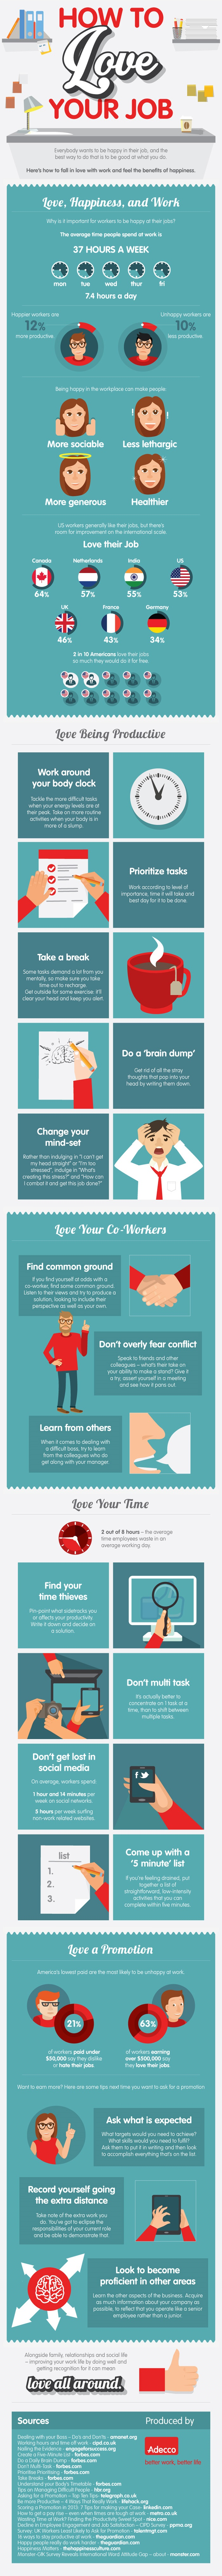 How To Love Your Job [Infographic]